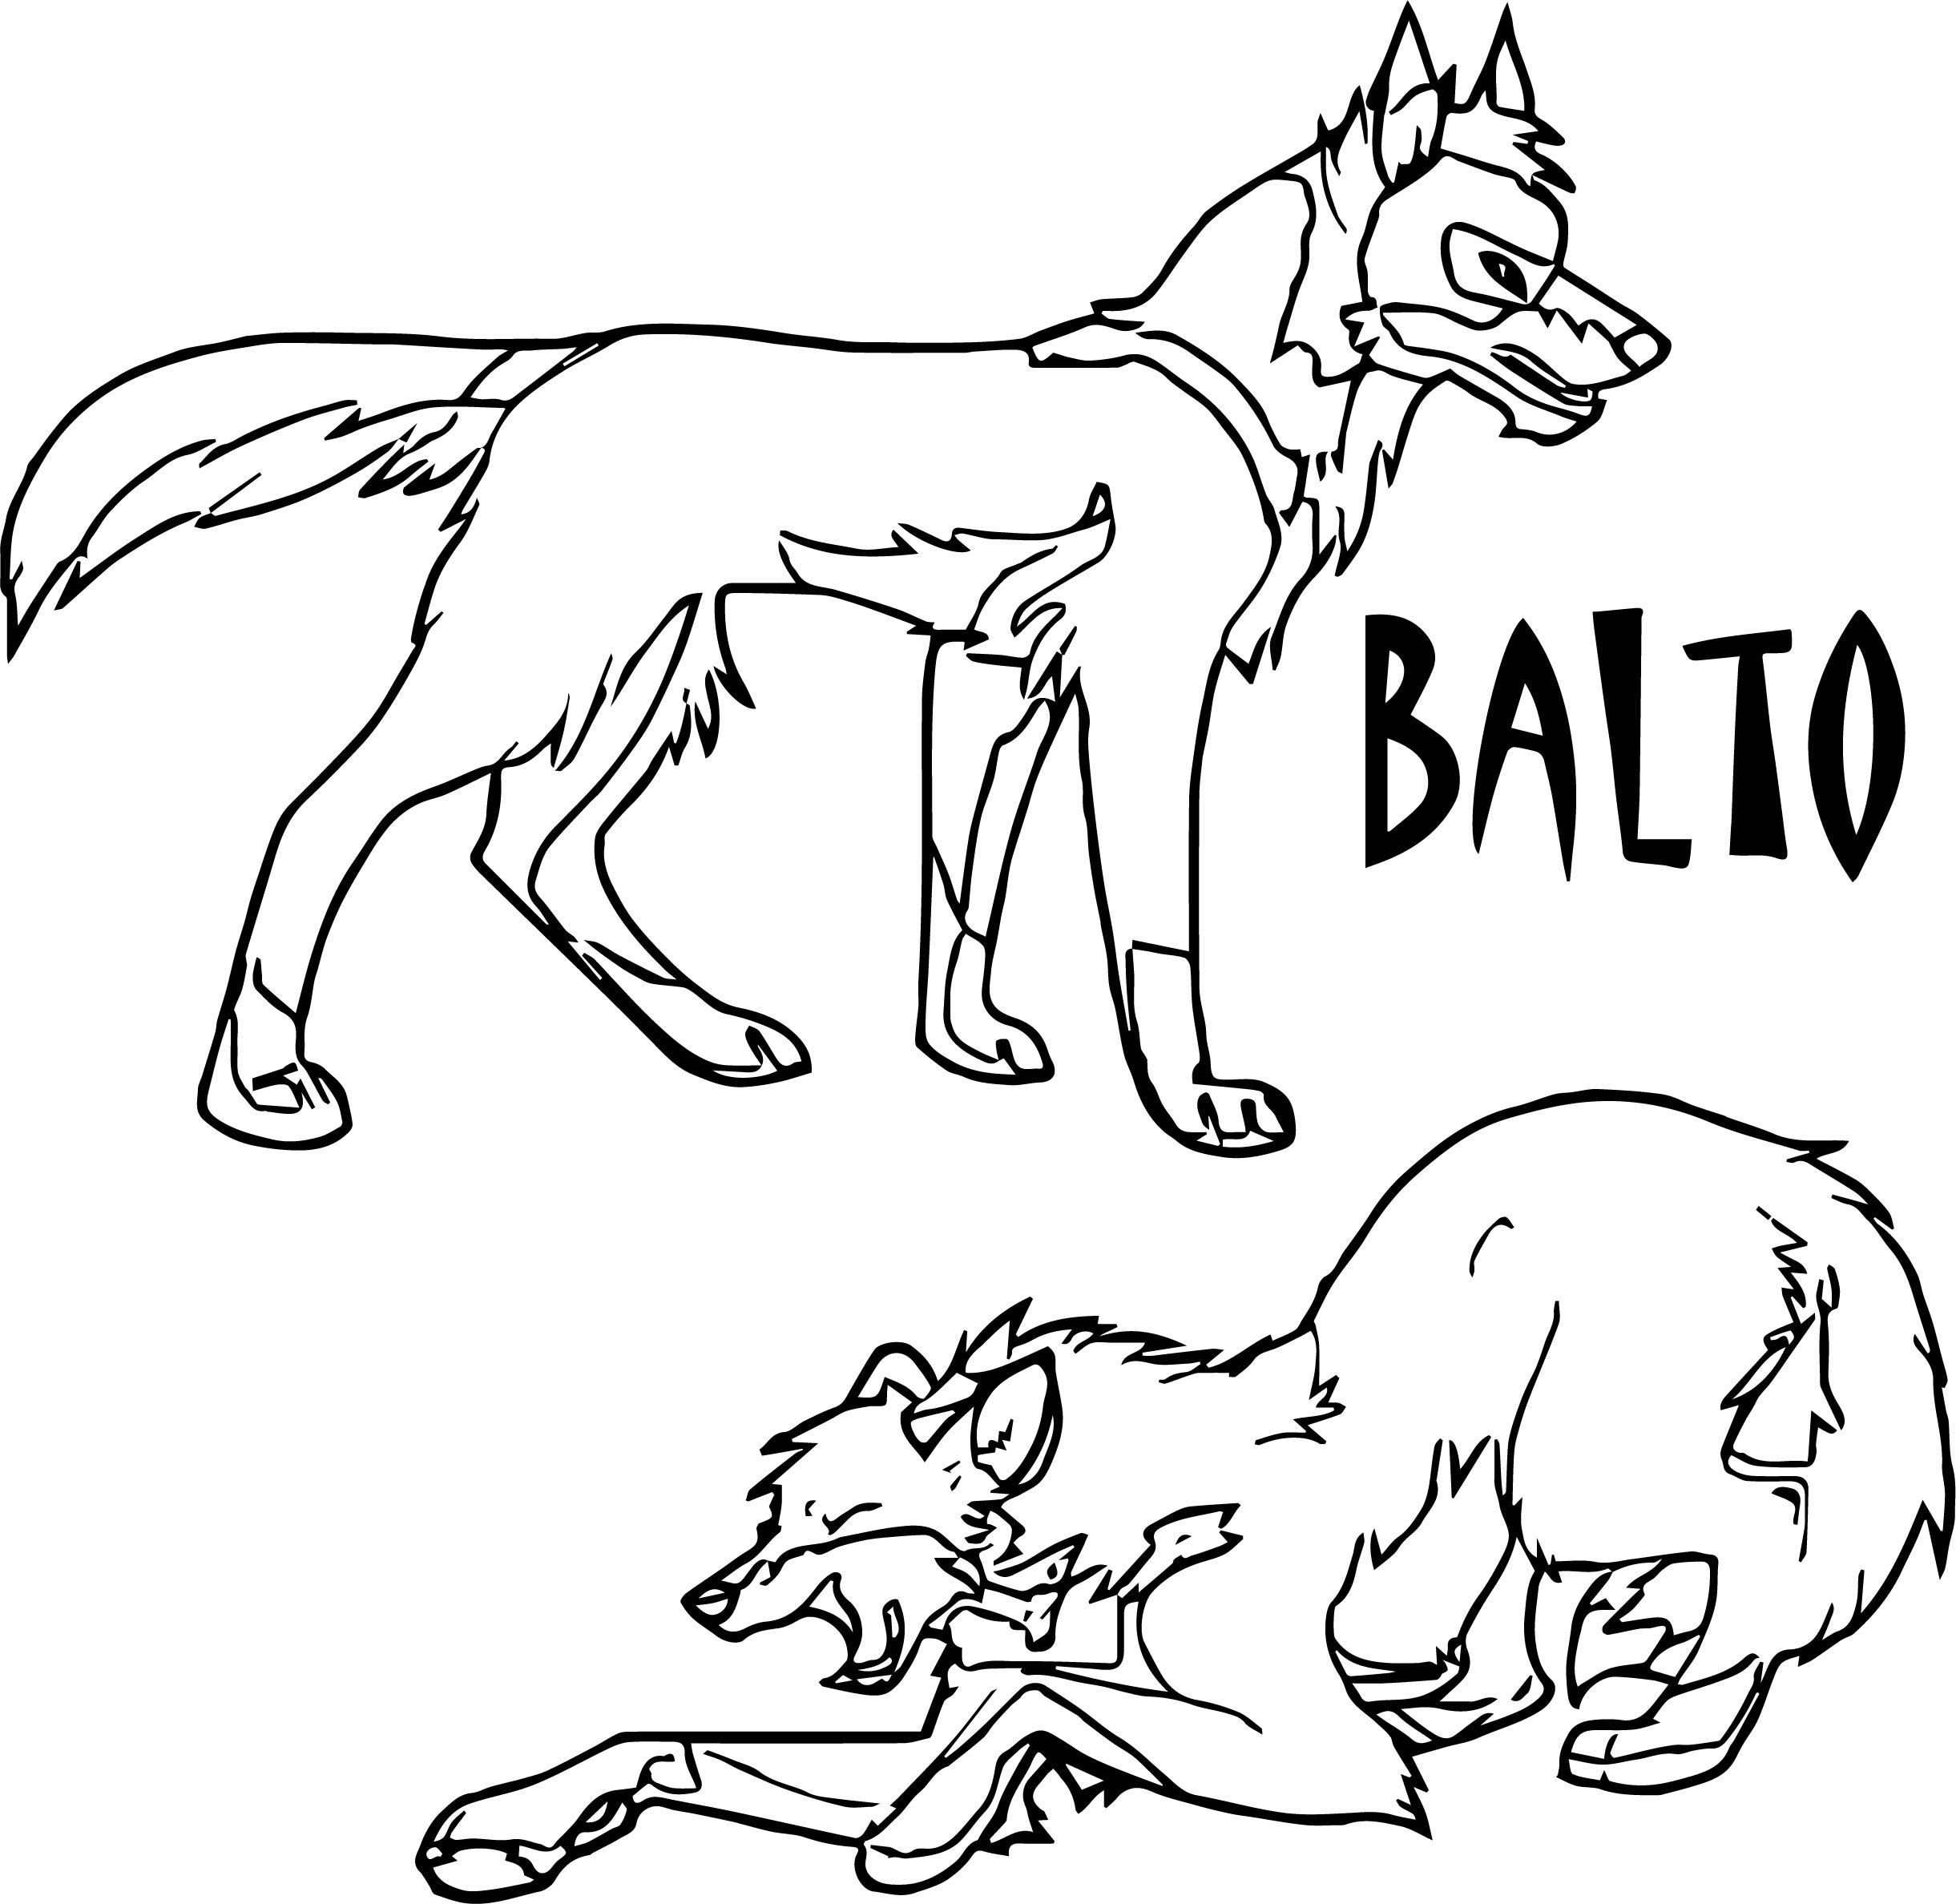 balto coloring pages balto coloring pages to download and print for free pages coloring balto